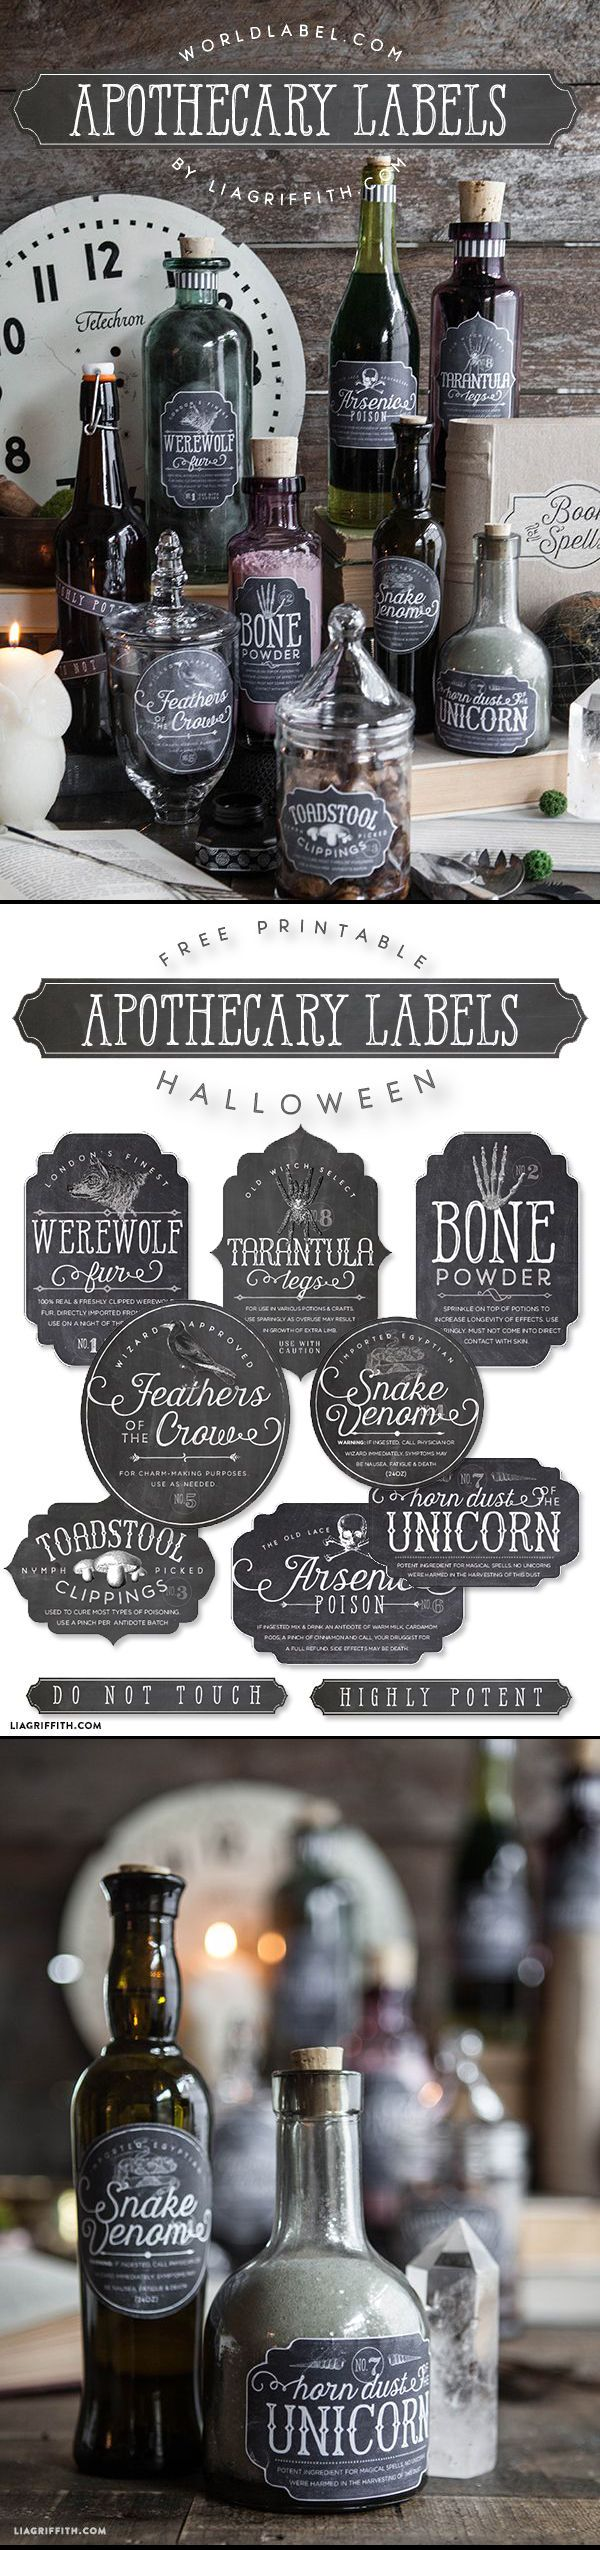 FREE PRINTABLE Apothecary Labels. The Sanderson Sisters have a cupboard full of potions. Potion bottles are fairly easy to make and can be an inexpensive way to decorate. Hocus Pocus Halloween Party Decorations & Ideas: